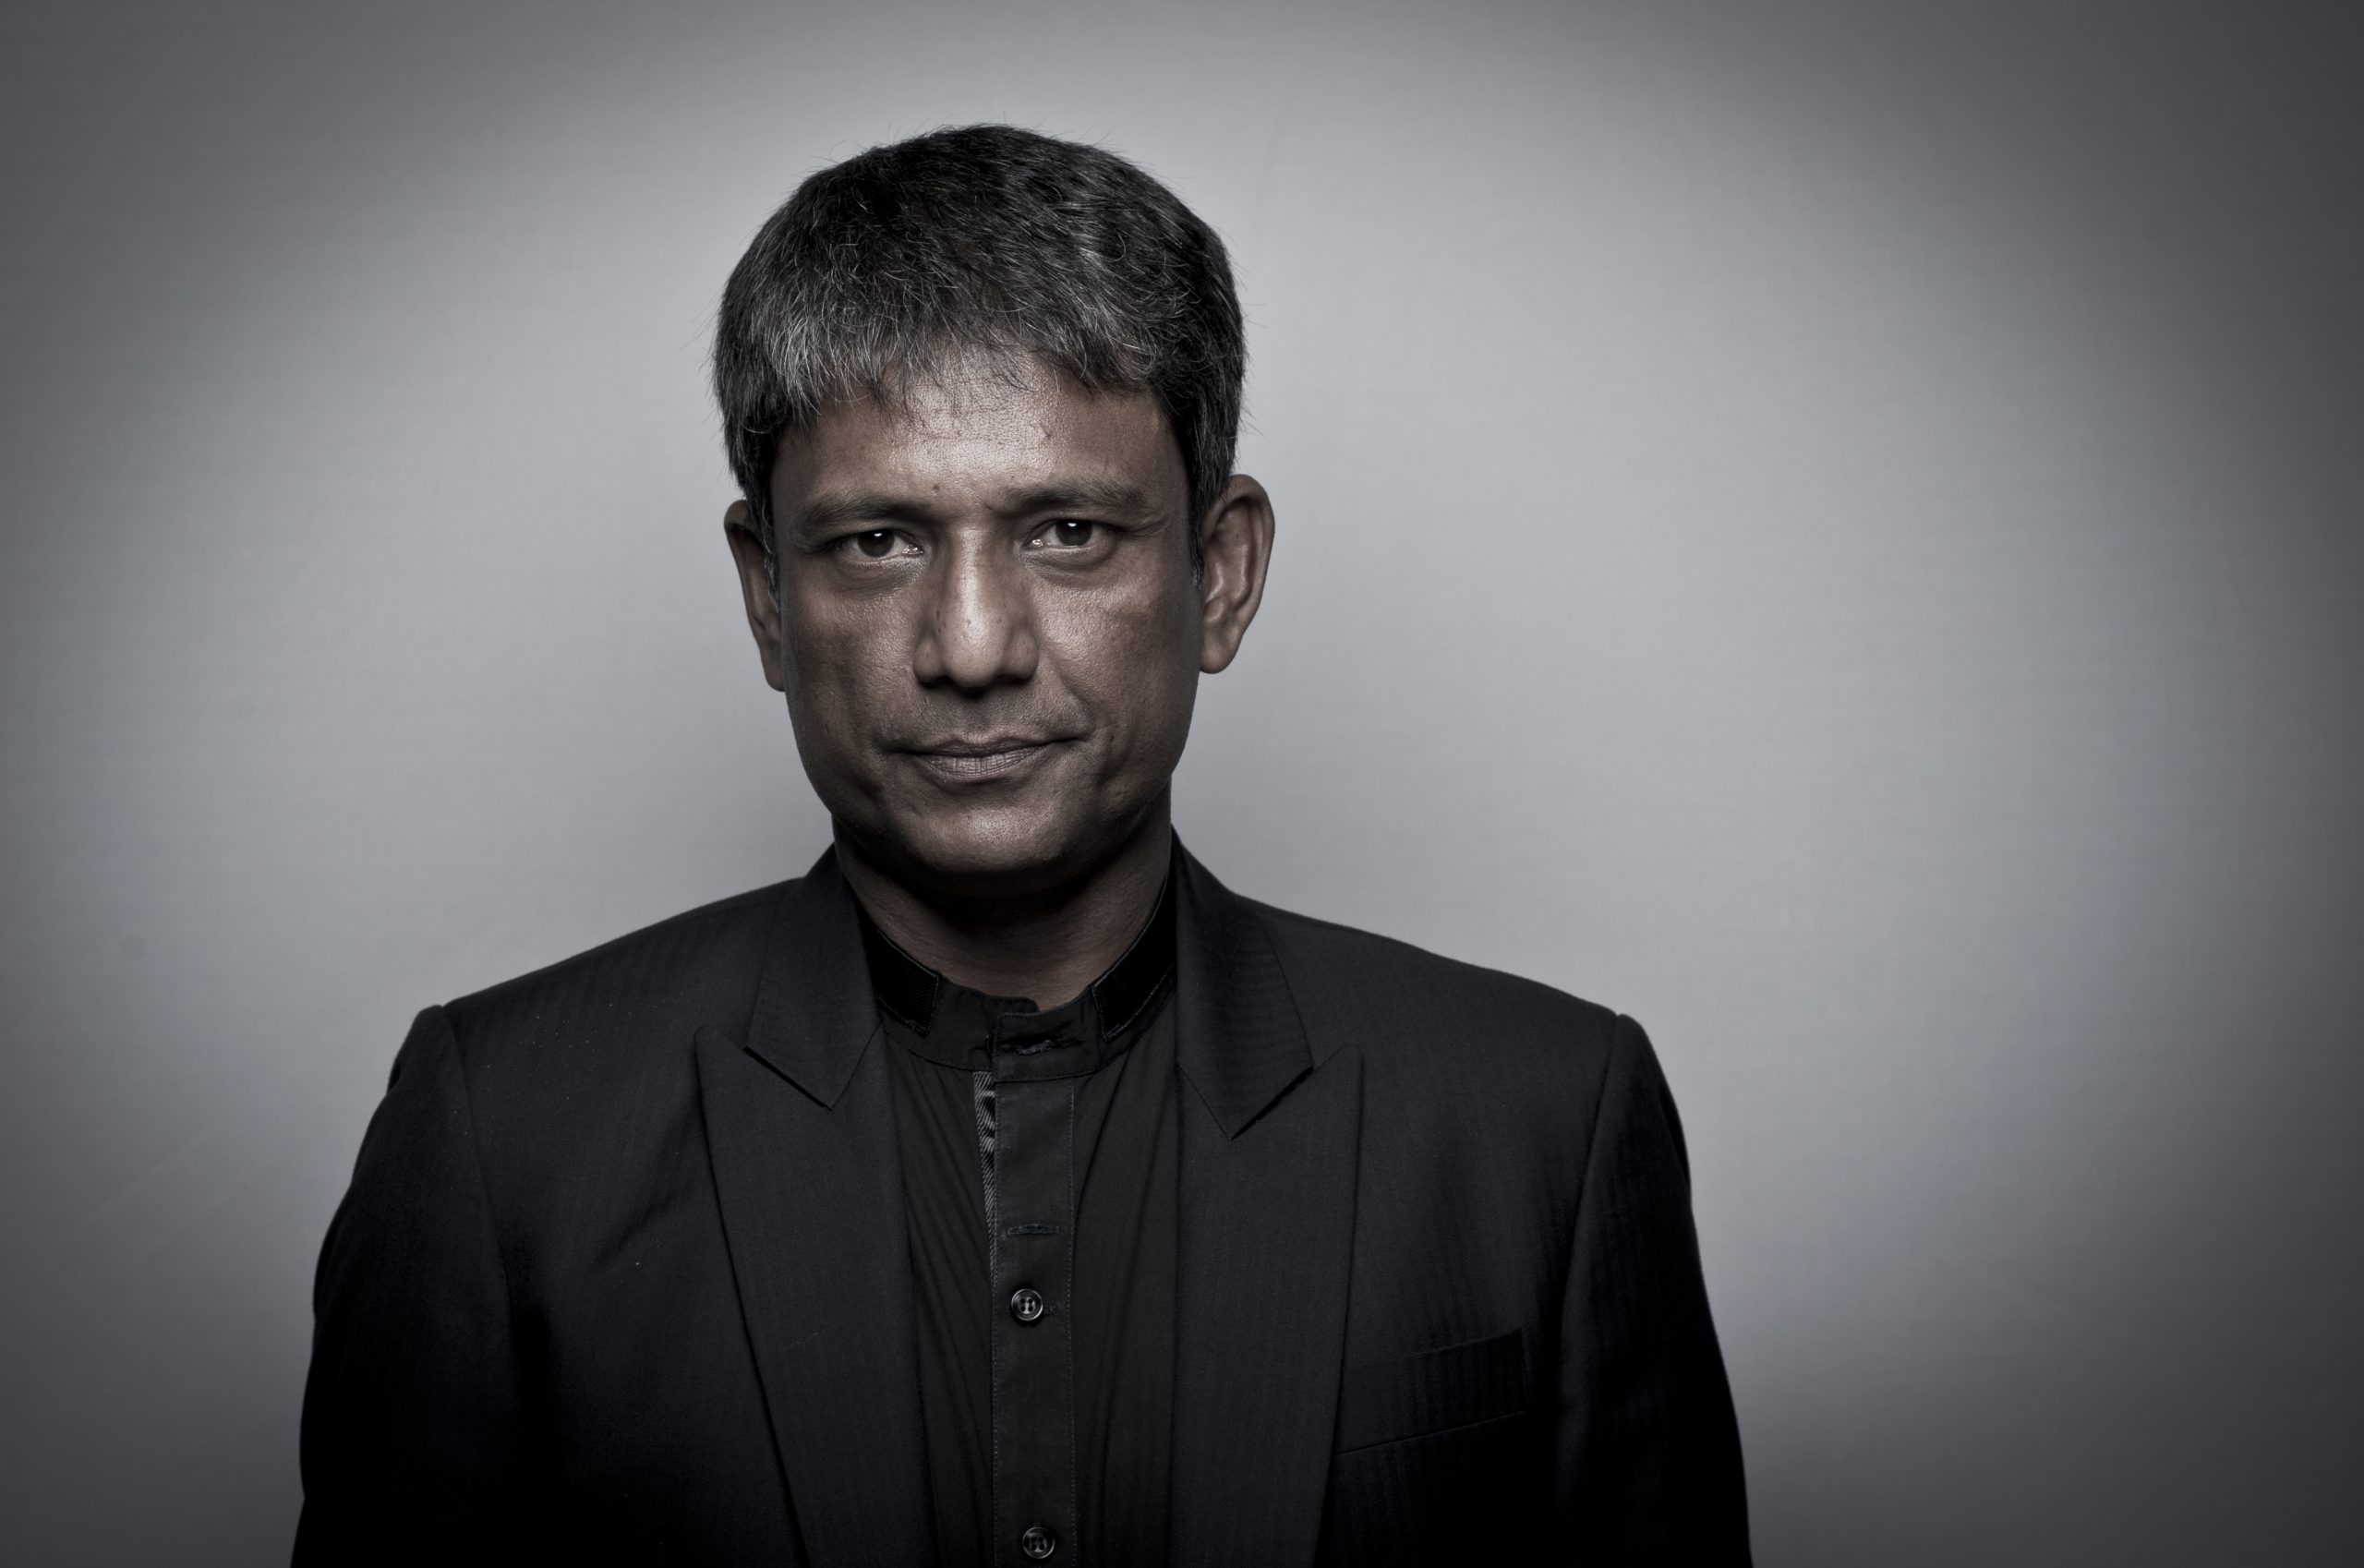 Adil Hussain (Photo by Gareth Cattermole/Getty Images for DIFF)